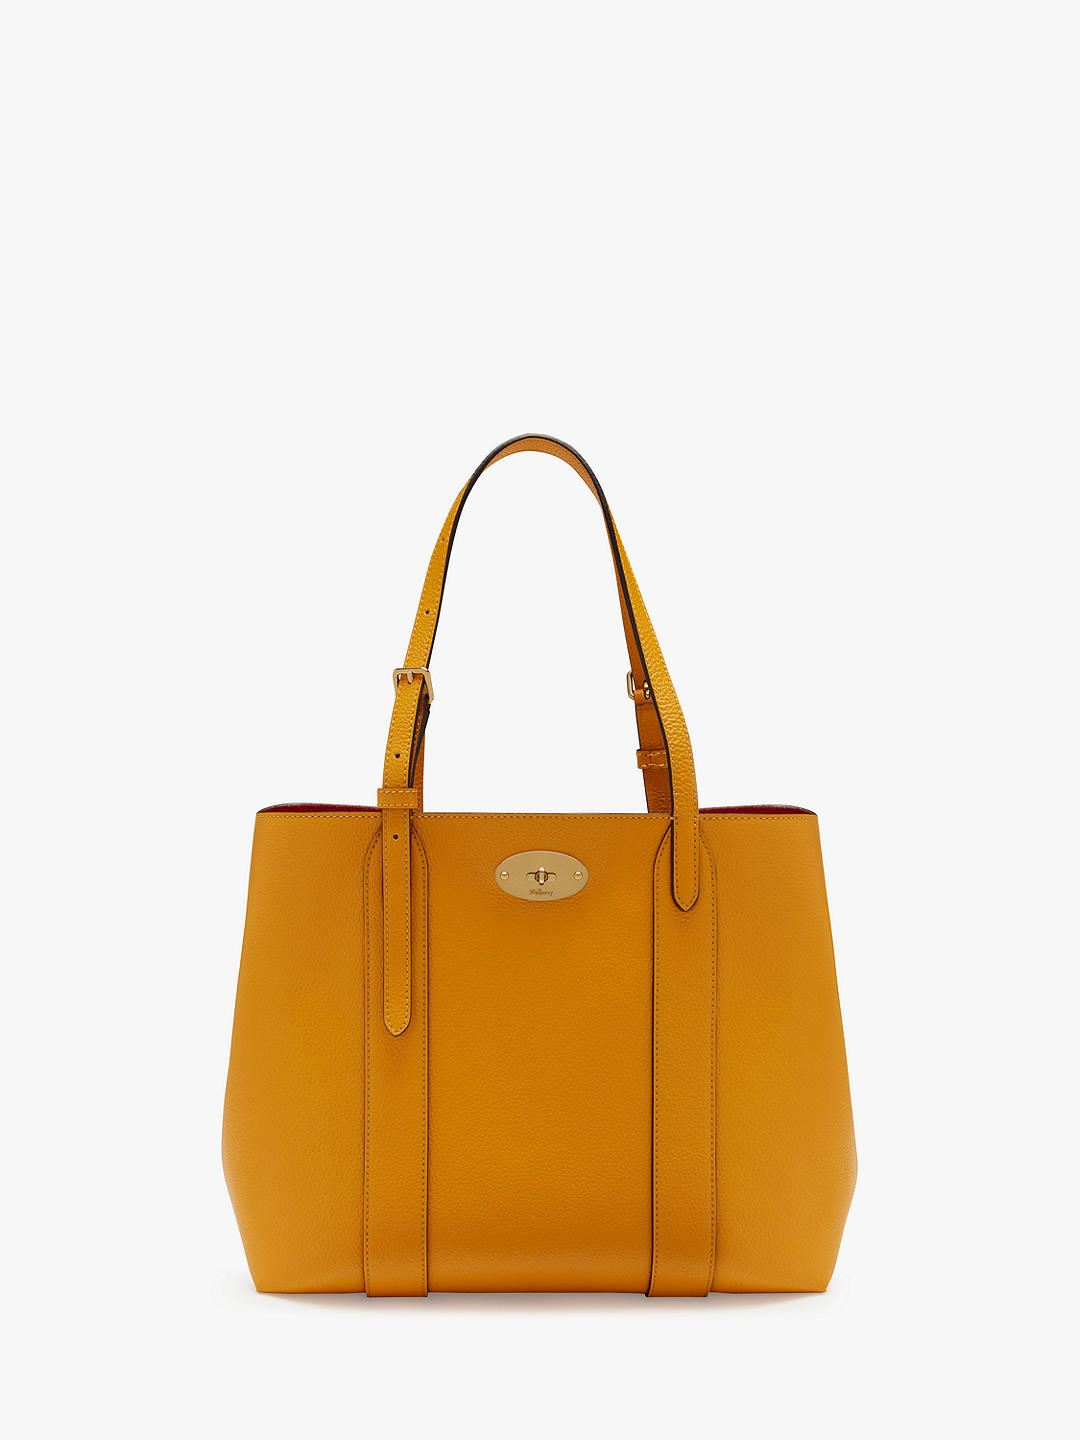 Mulberry Bayswater Small Leather Grab Bag 5054573145533  fcec6923b4796